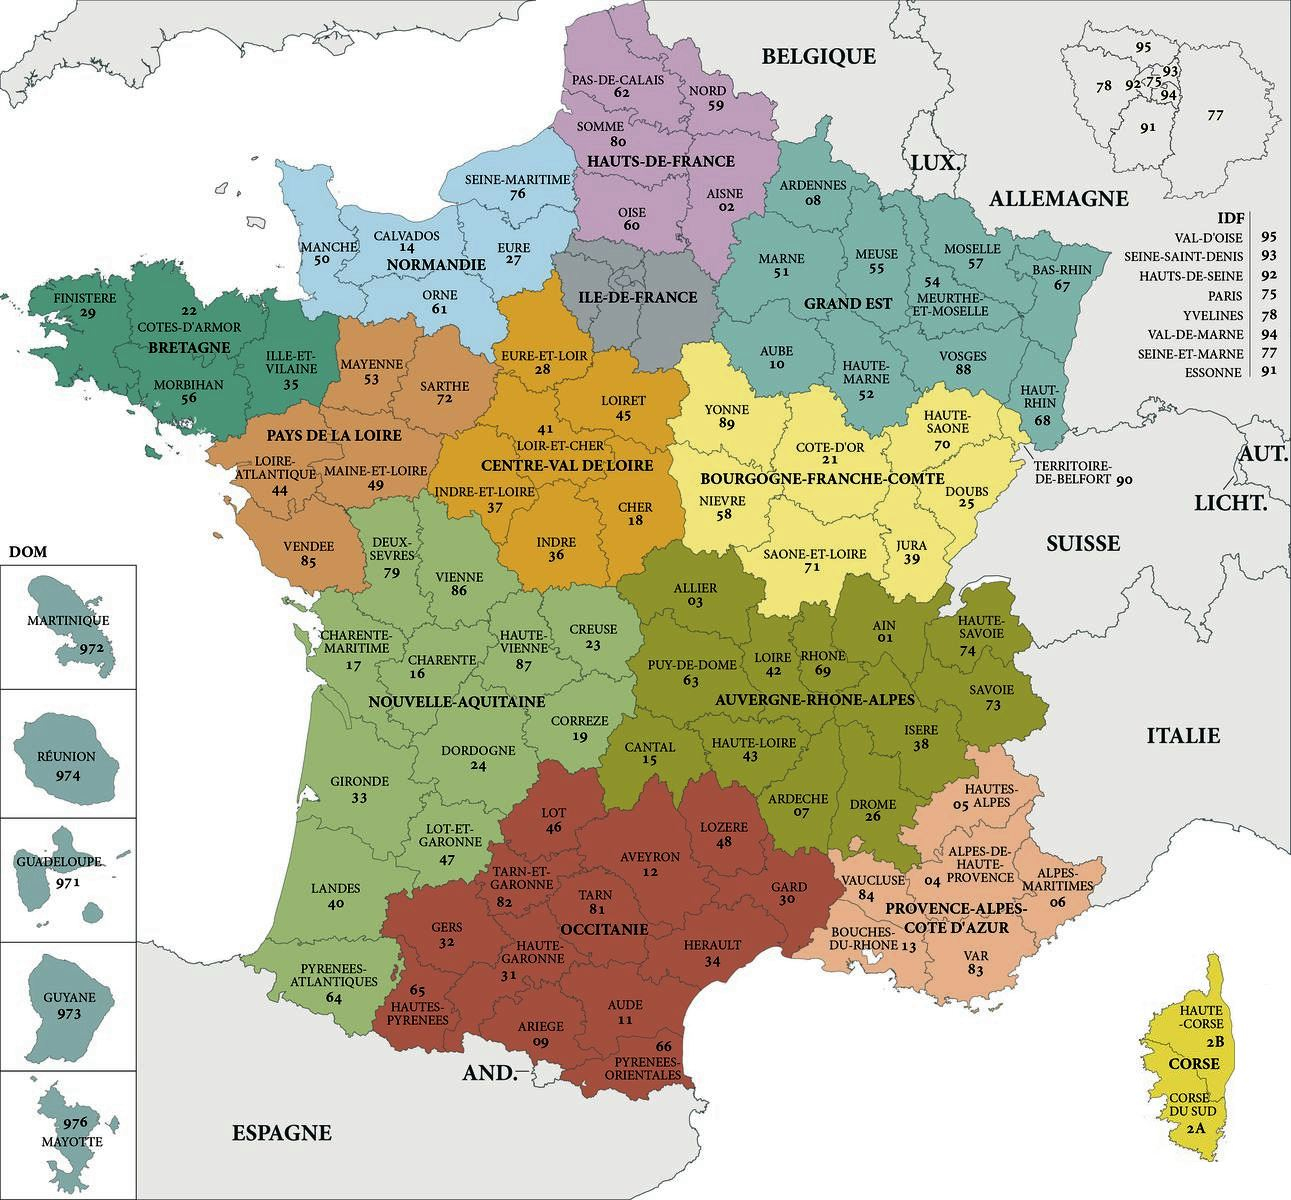 Carte De France Departements : Carte Des Départements De France dedans Carte De France Avec Département À Imprimer